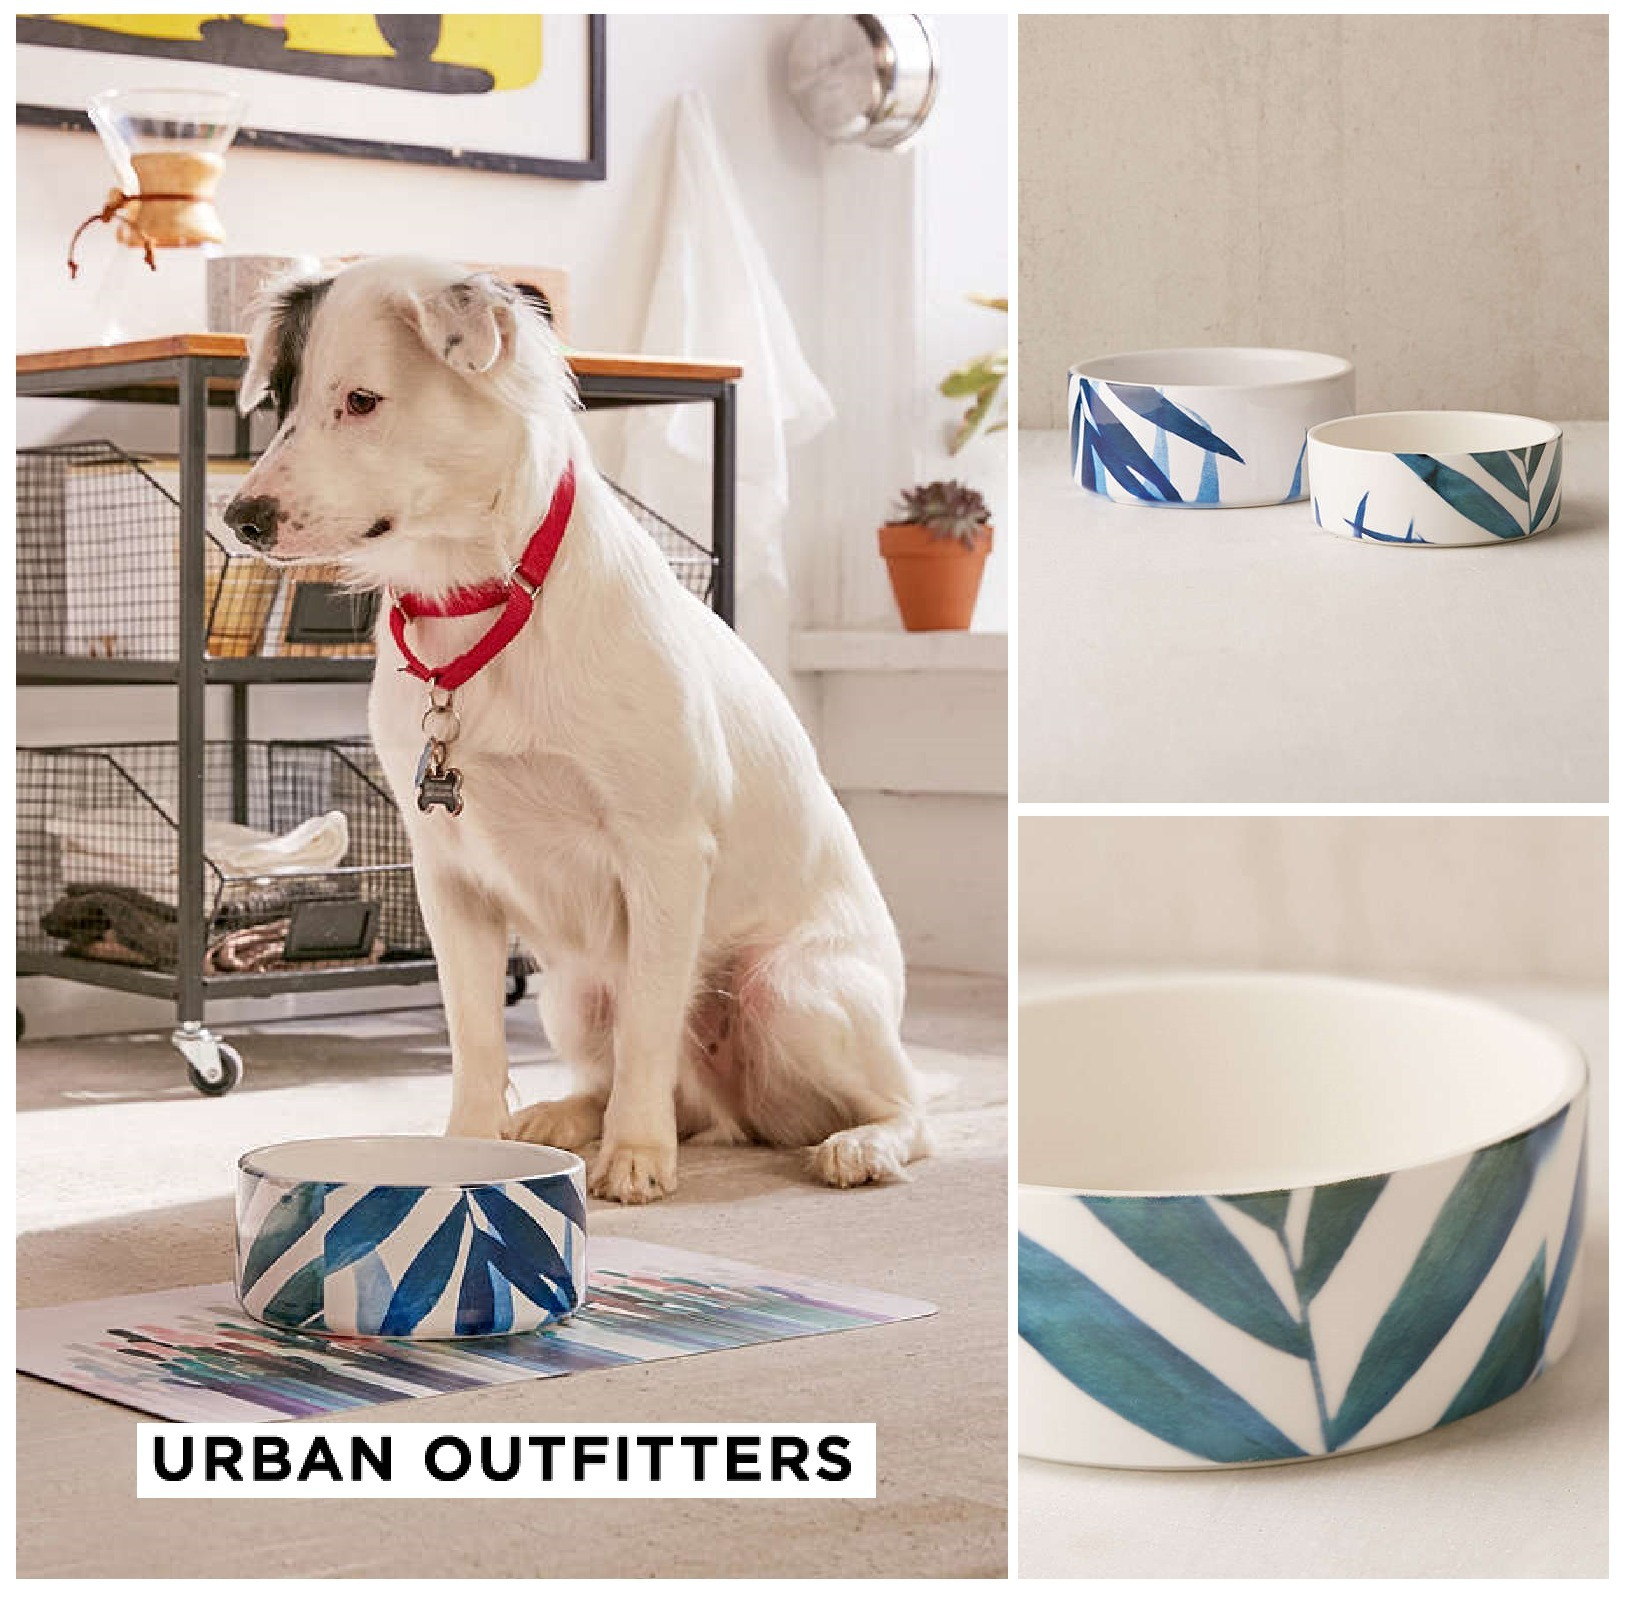 Urban Outfitters☆Emanuela Carratoni SweetTropicana PetBowl